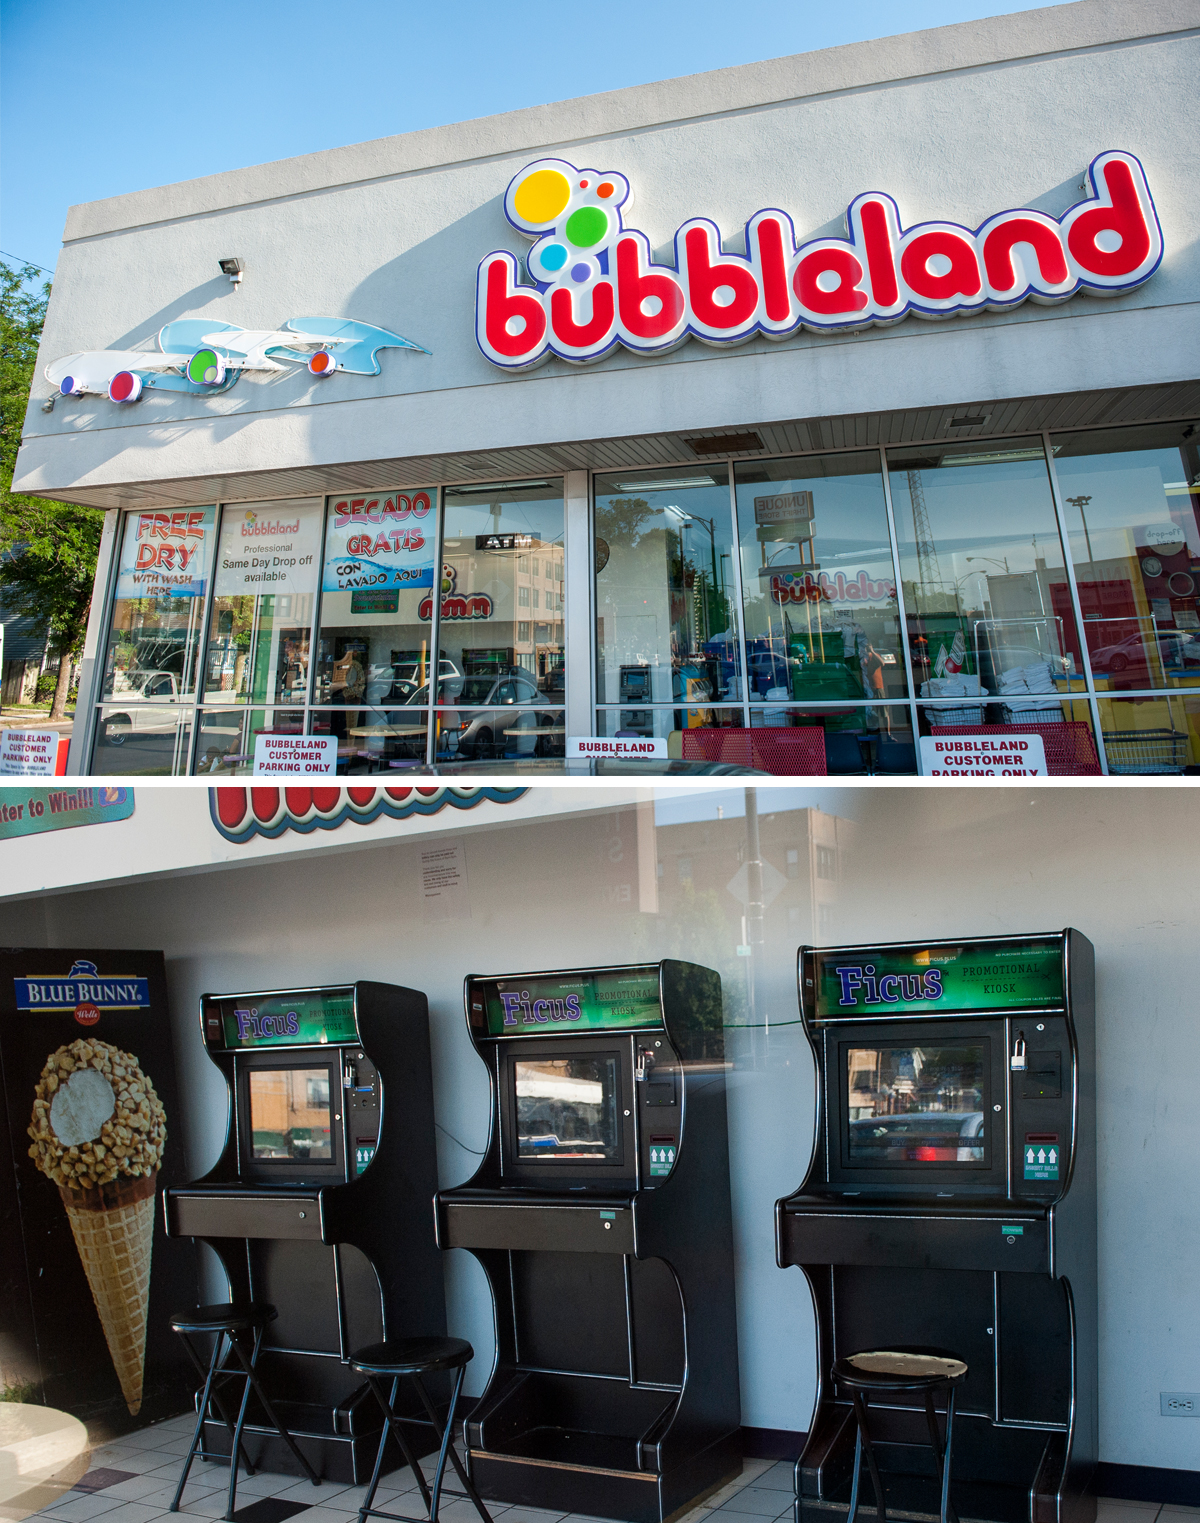 There are three sweepstakes machines at Bubbleland, a laundromat at Elston and Kimball. (Bill Healy/WBEZ)